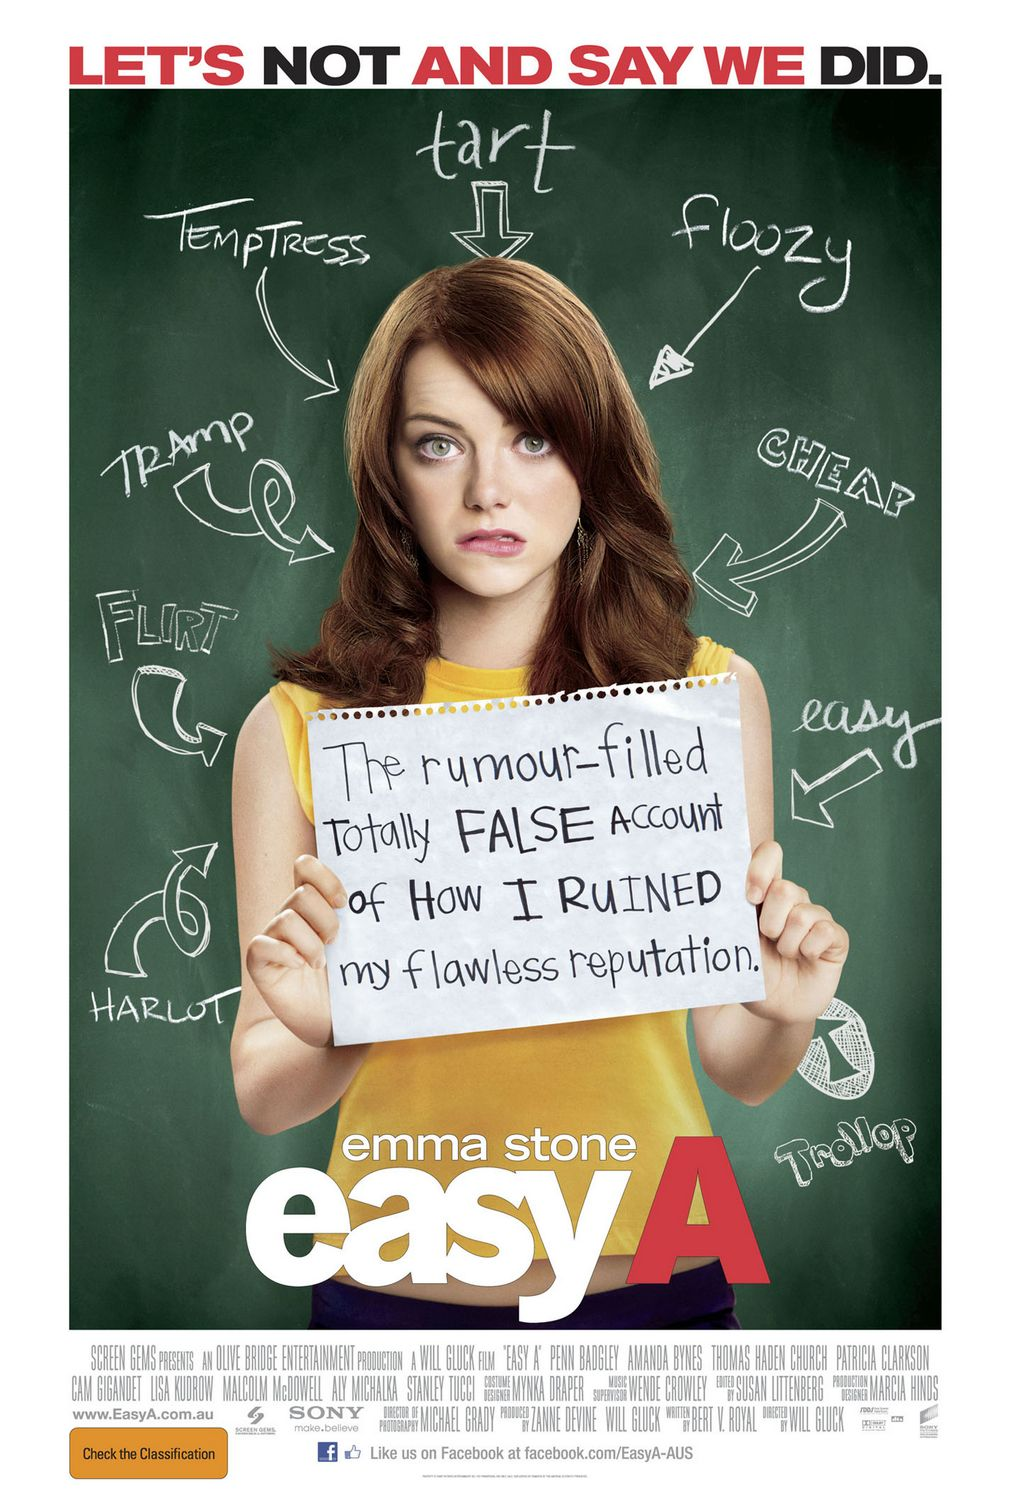 EASY A Rated M, 89 Minutes.